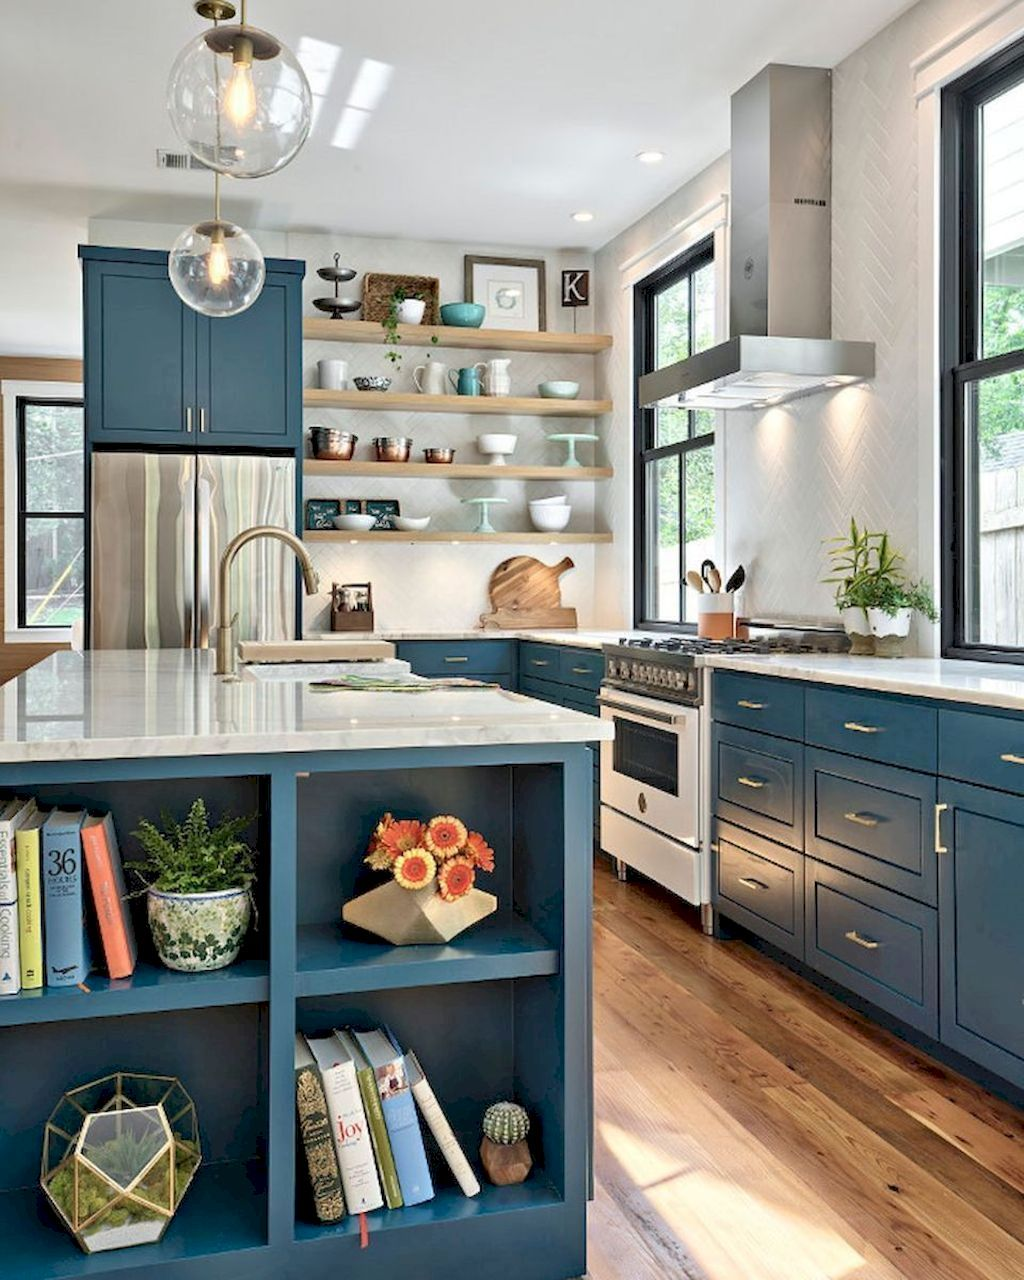 75 Farmhouse Gray Kitchen Cabinet Design Ideas